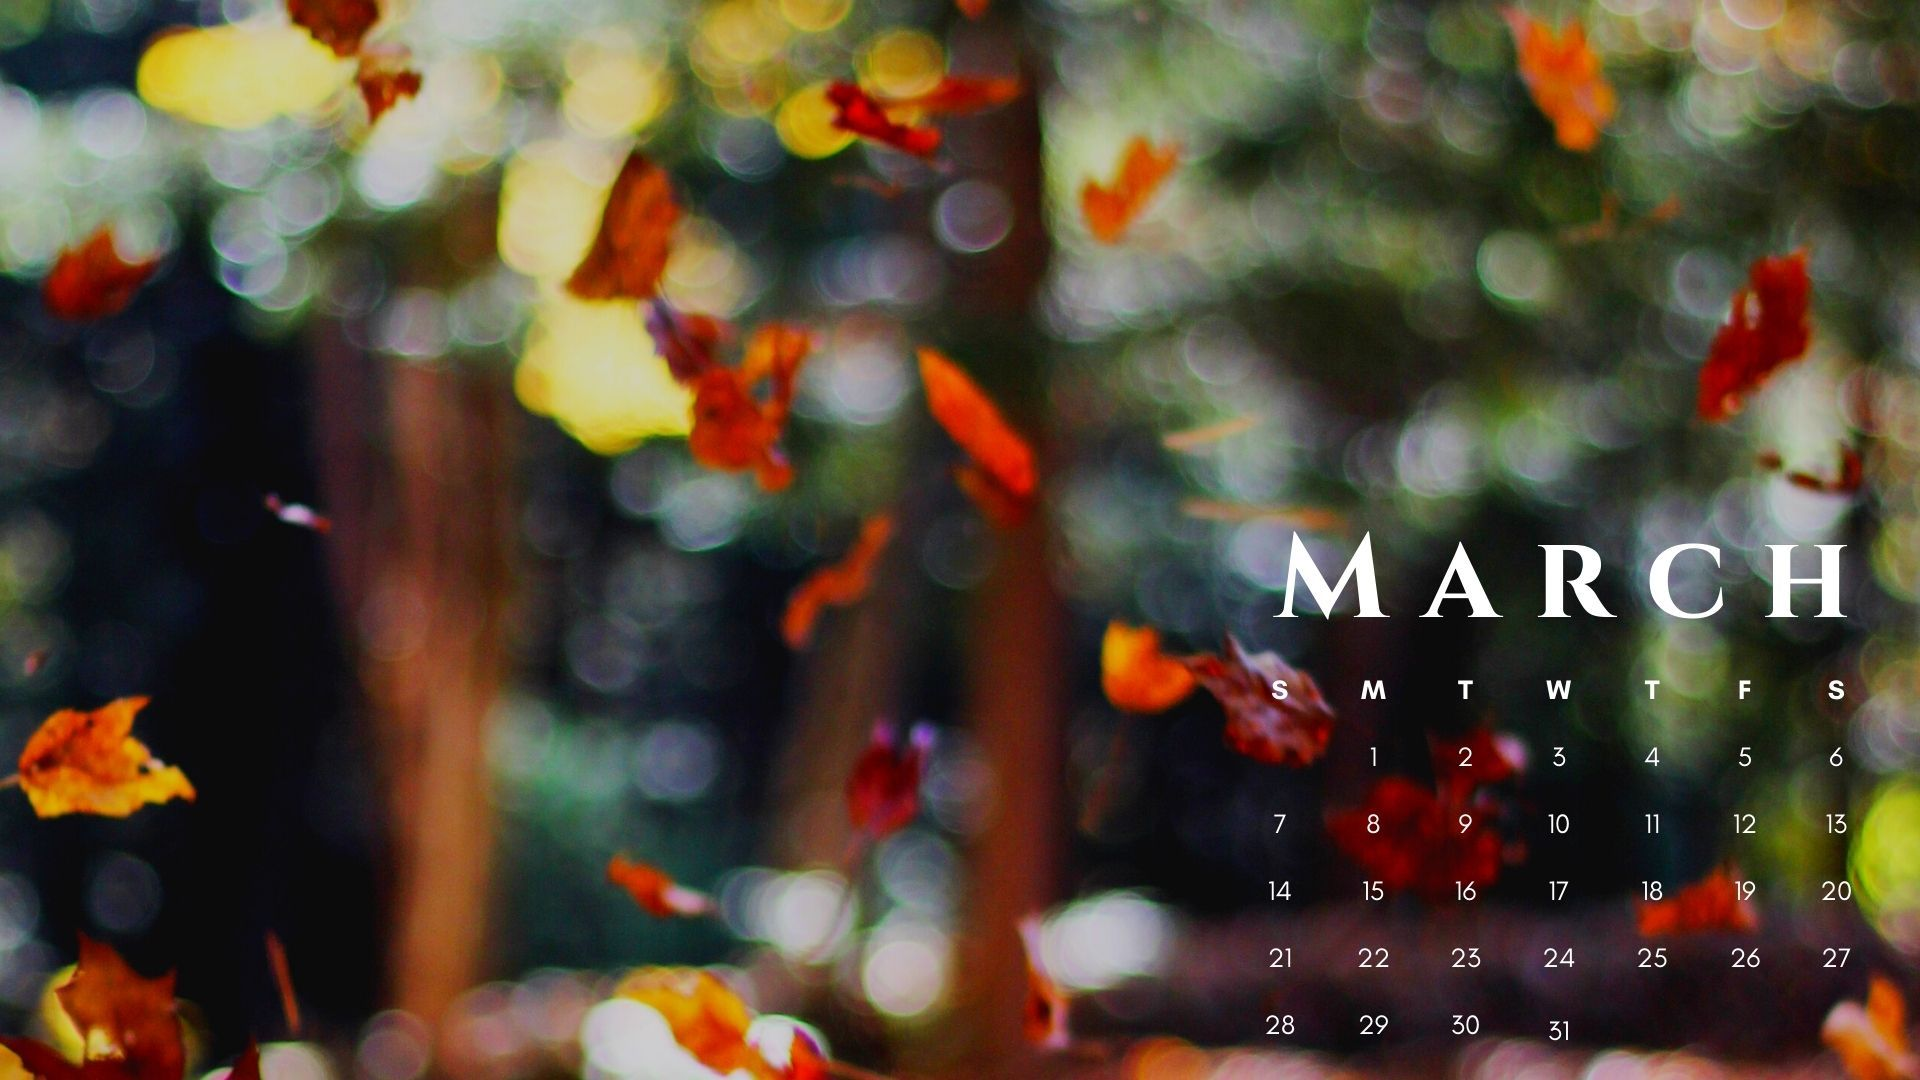 March 2021 Calendar Nature HD Wallpaper Calendar wallpaper